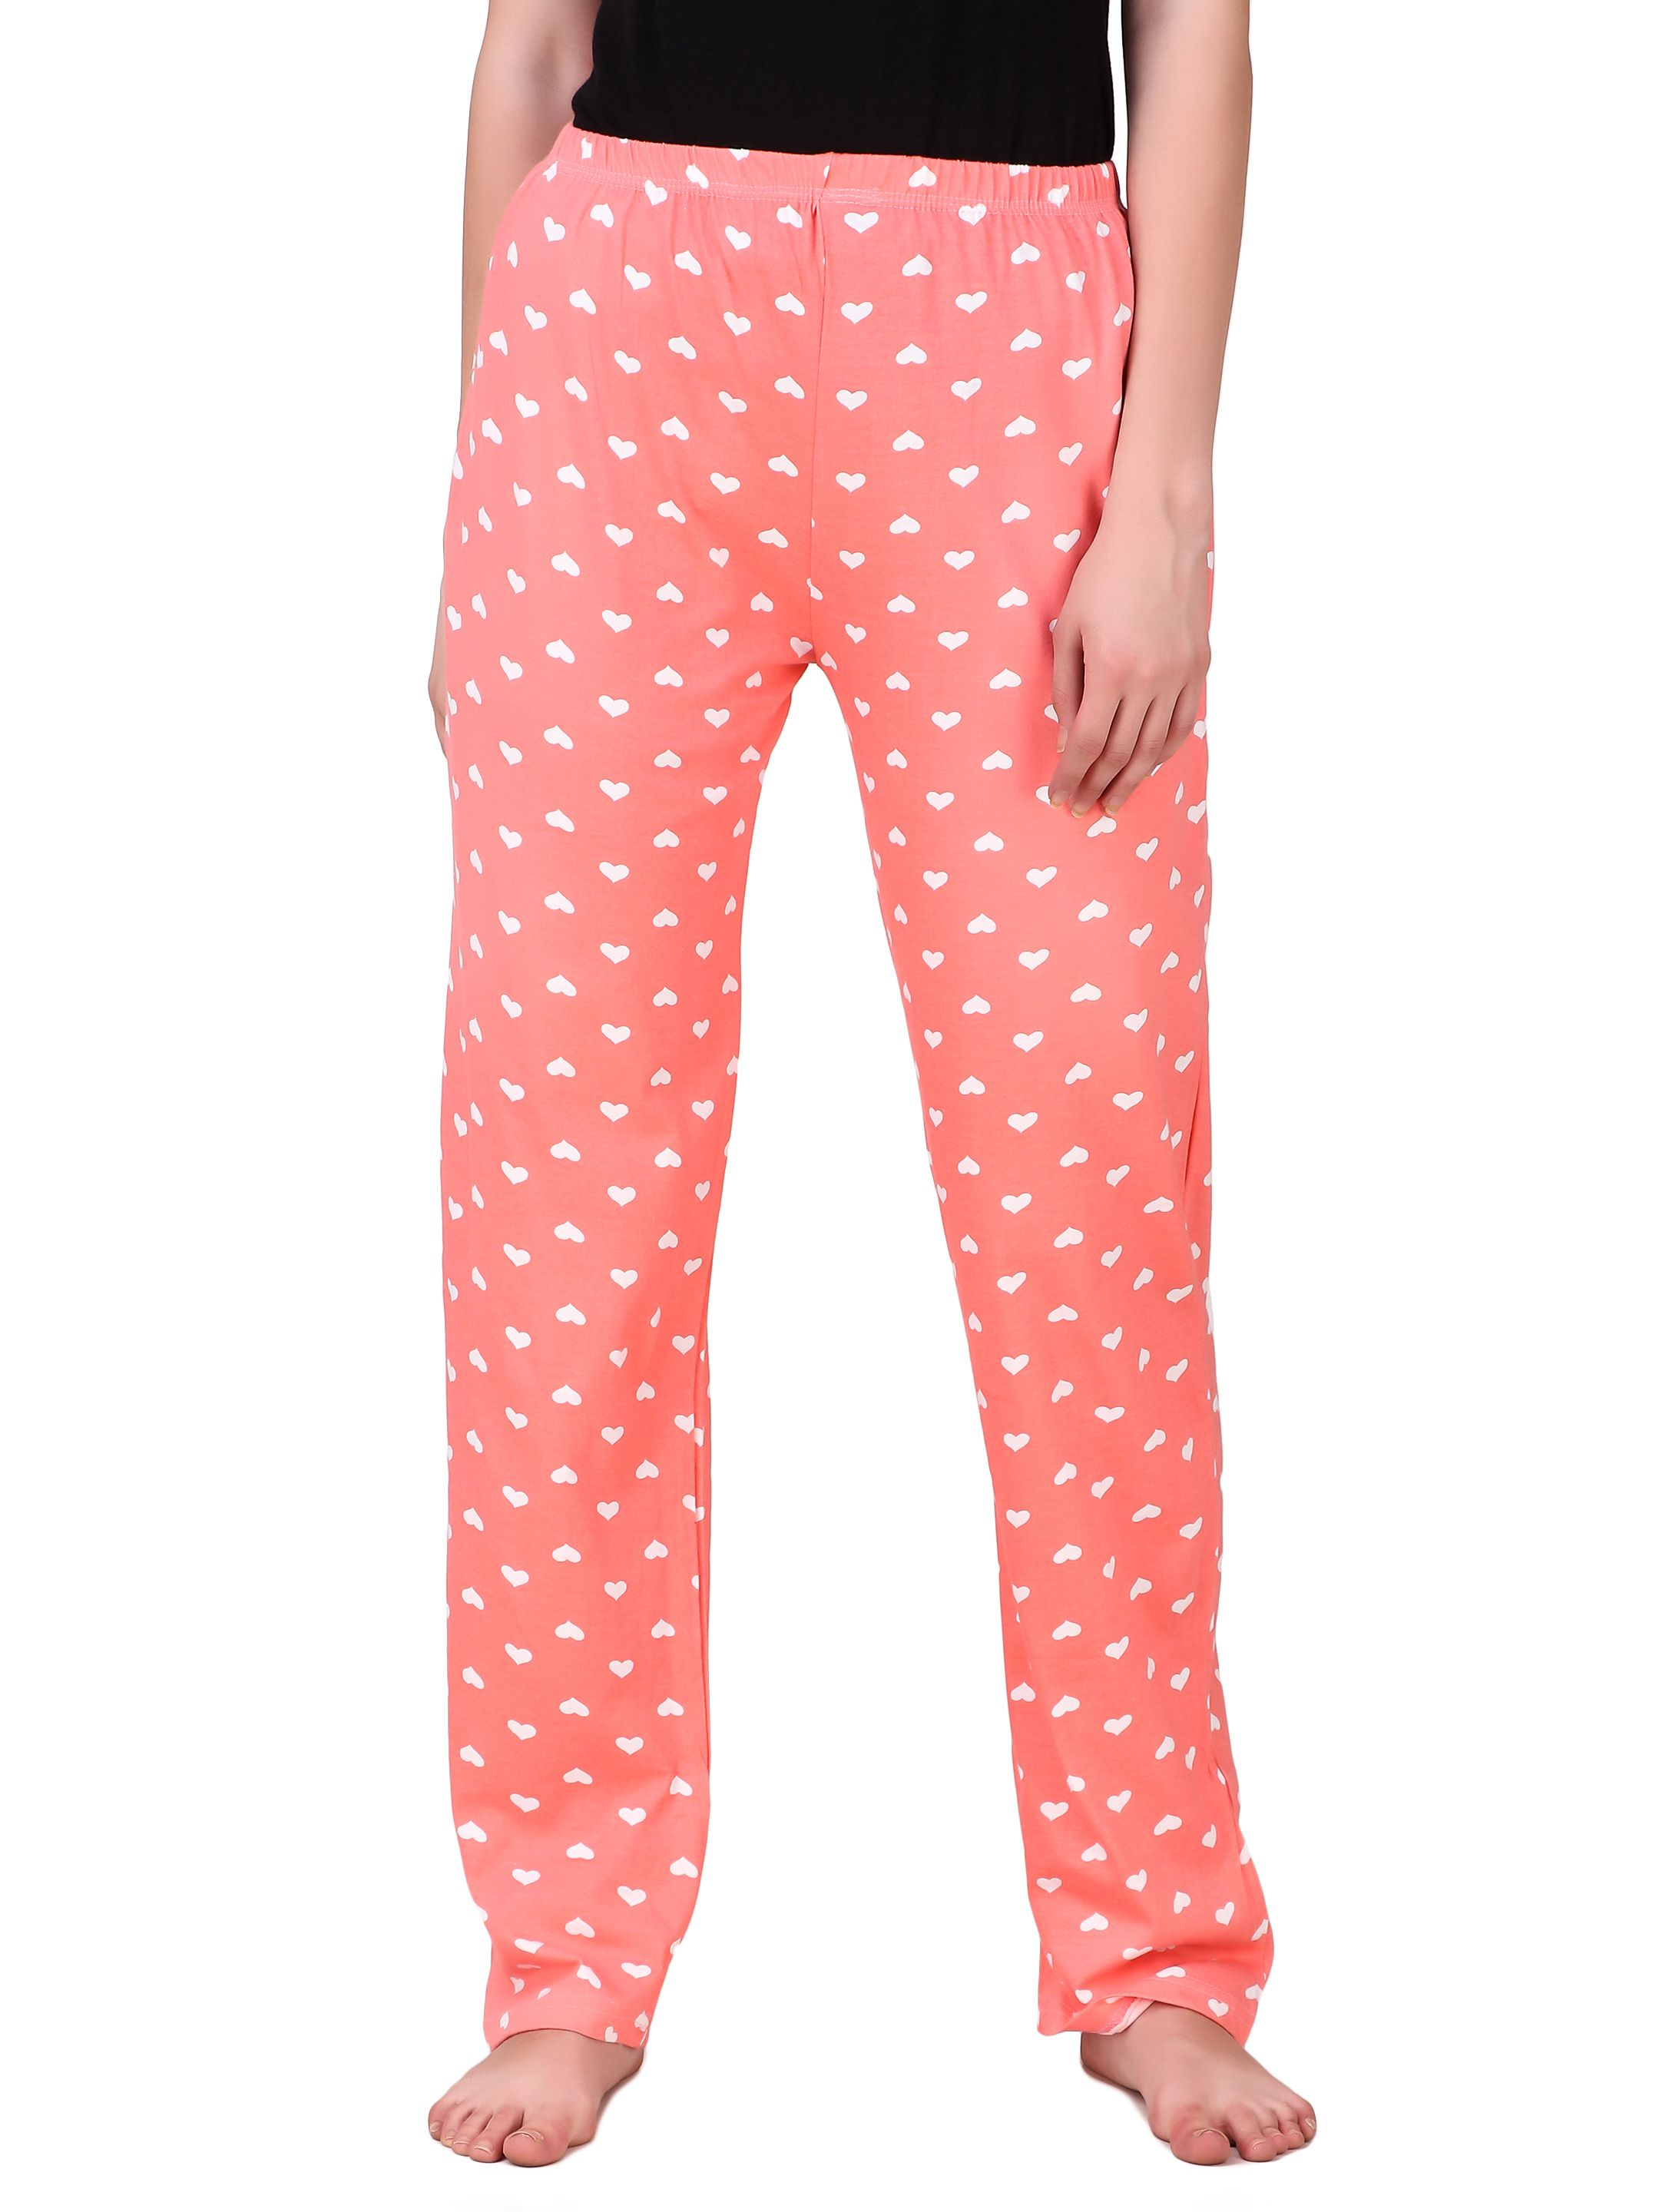 12e04f830e51 Buy Masha Chiffon Pajamas - Orange Online at Best Prices in India - Snapdeal